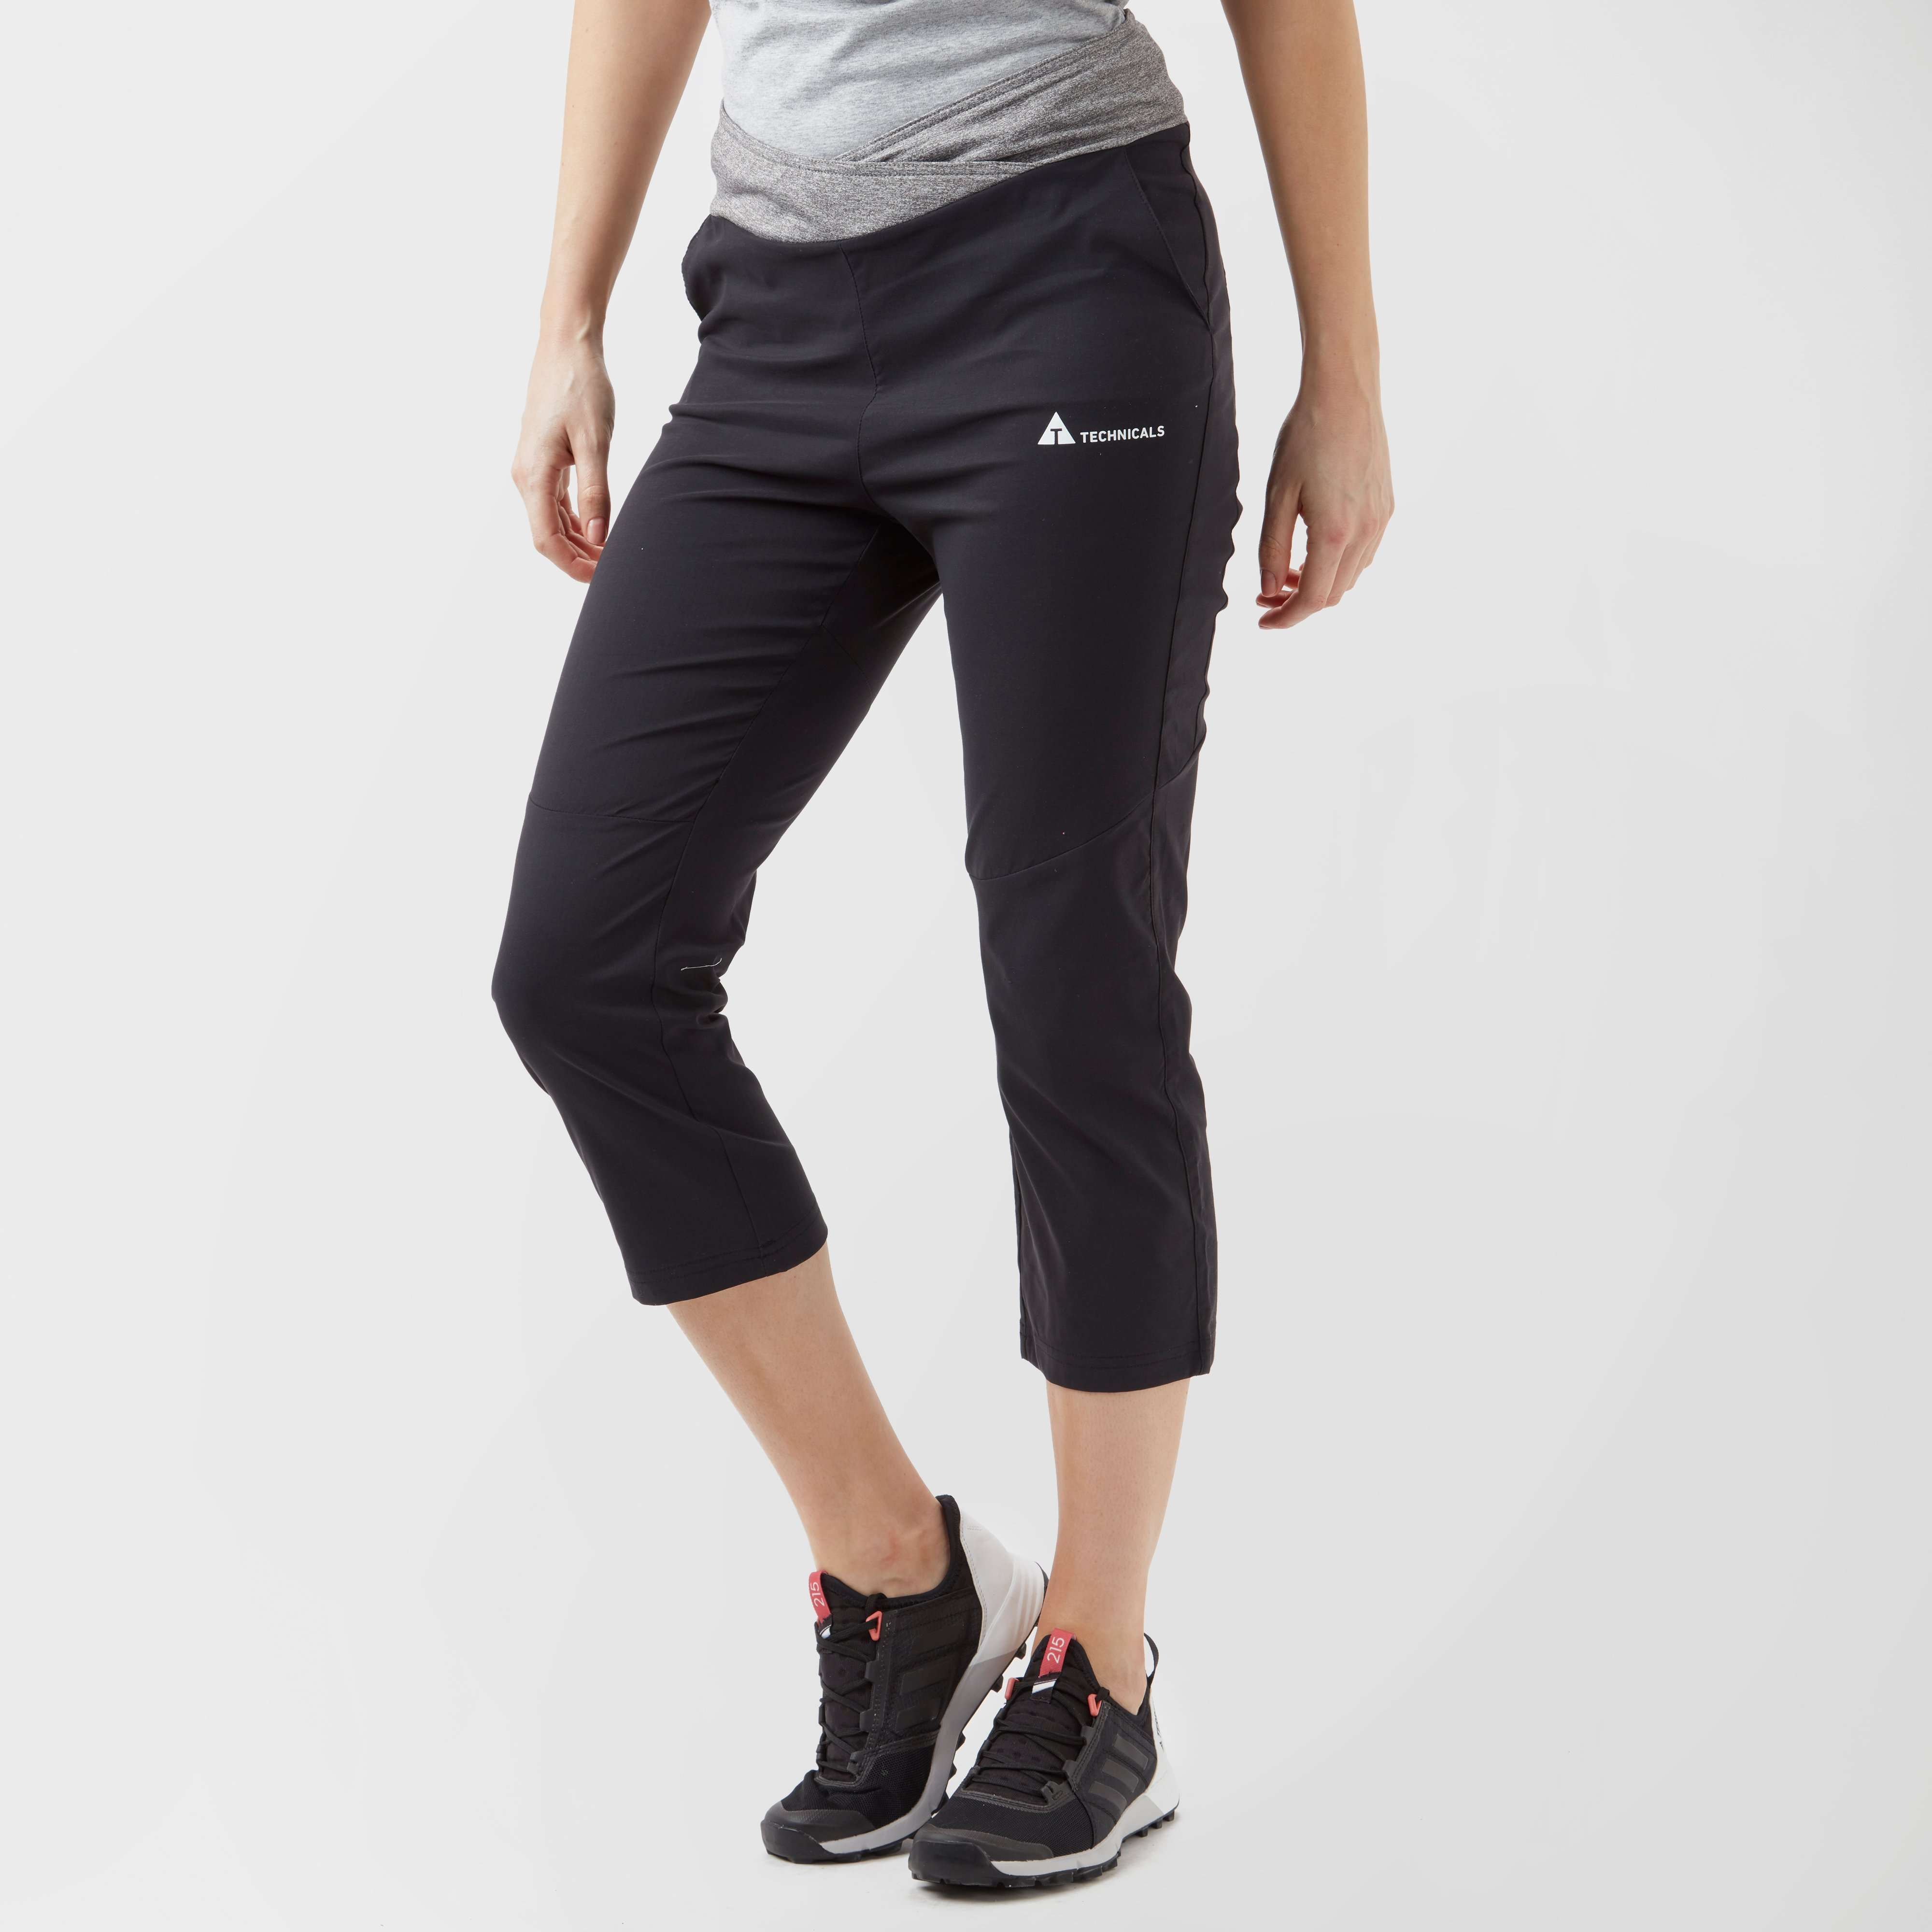 TECHNICALS Women's Vitality Cropped Walking Pants